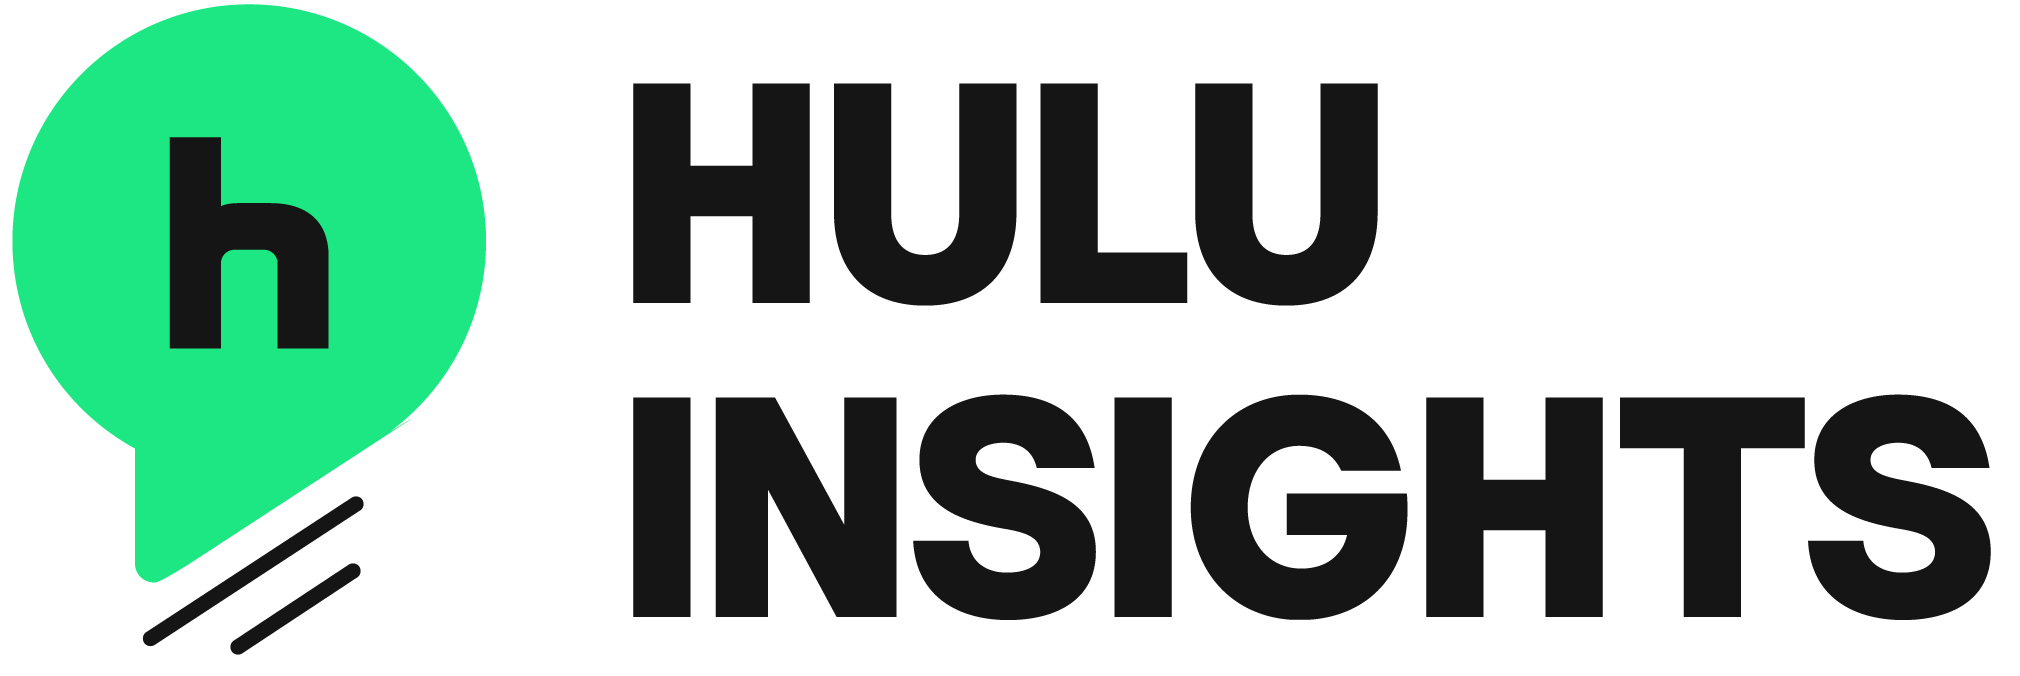 Hulu Insights logo